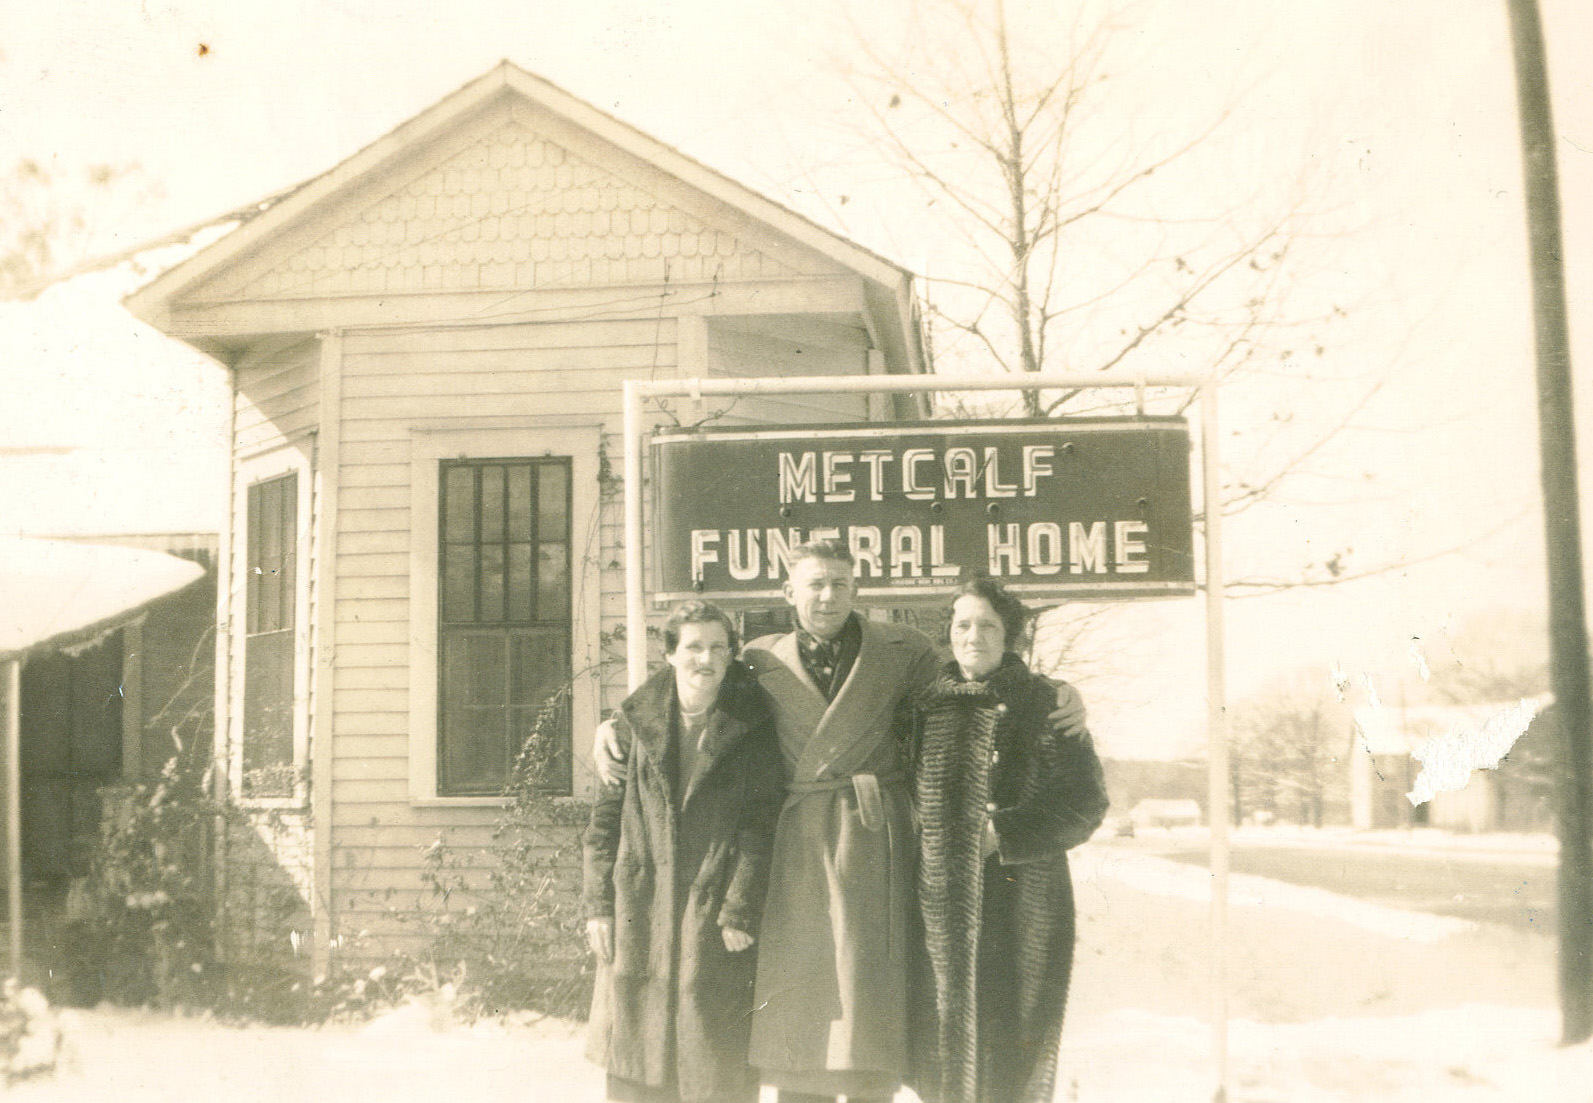 Metcalf Funeral Home serving the community for nearly 80 years - The ...